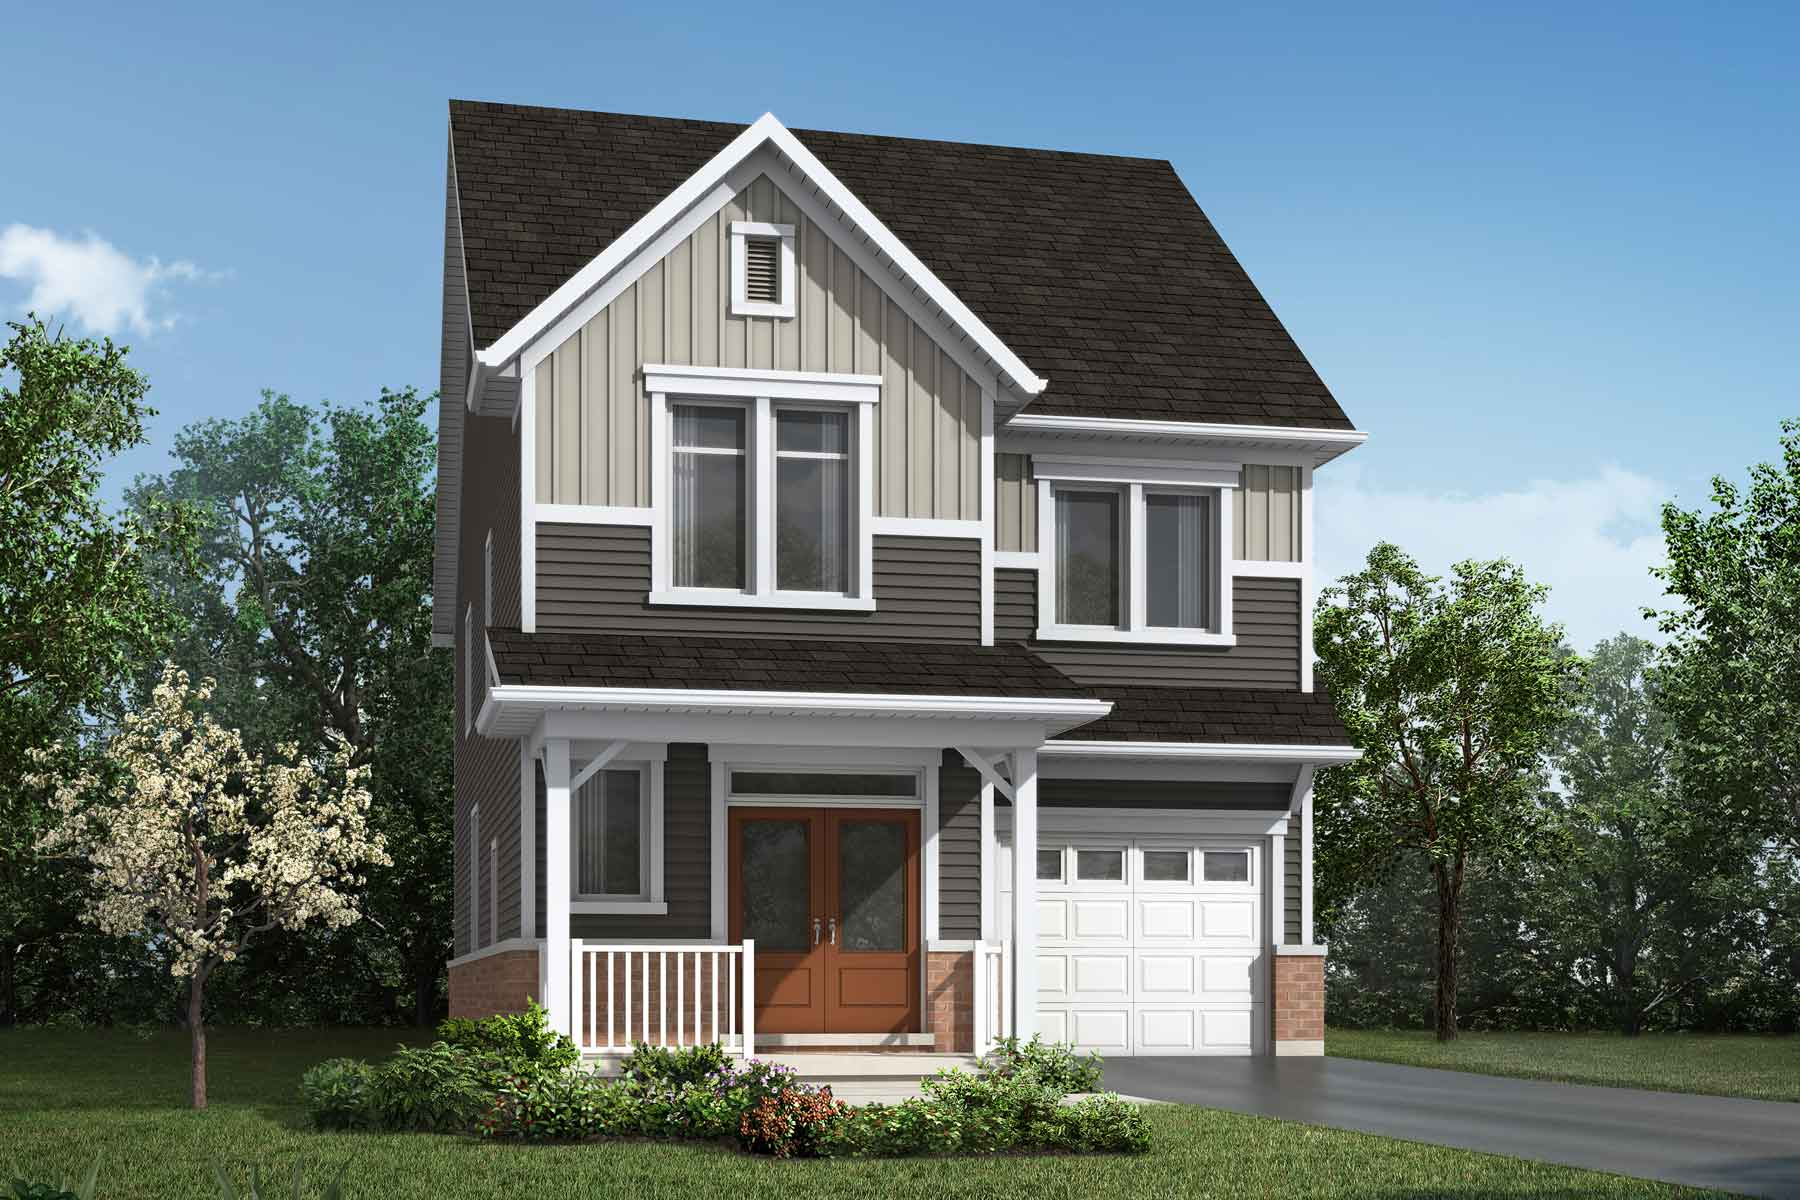 The Oxford Plan farmhouse_southestates_oxford at Wildflower Crossing in Kitchener Ontario by Mattamy Homes